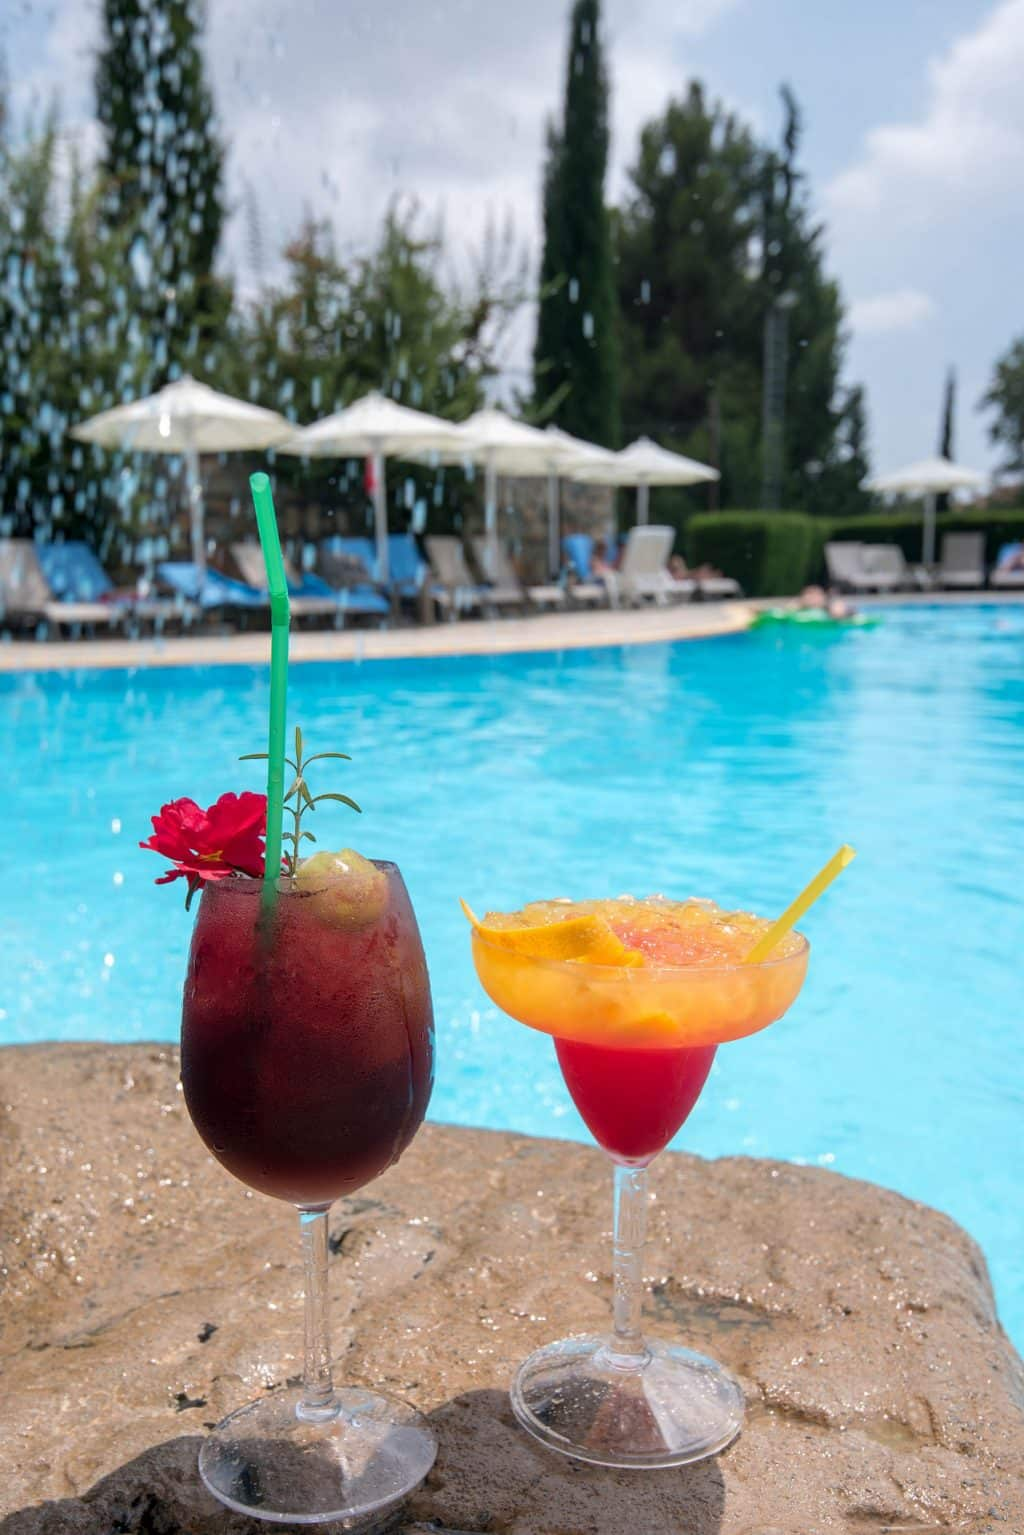 What can you expect at a Club Med resort? And is it really all inclusive like they say? Here's what we think of Club Med vacations!